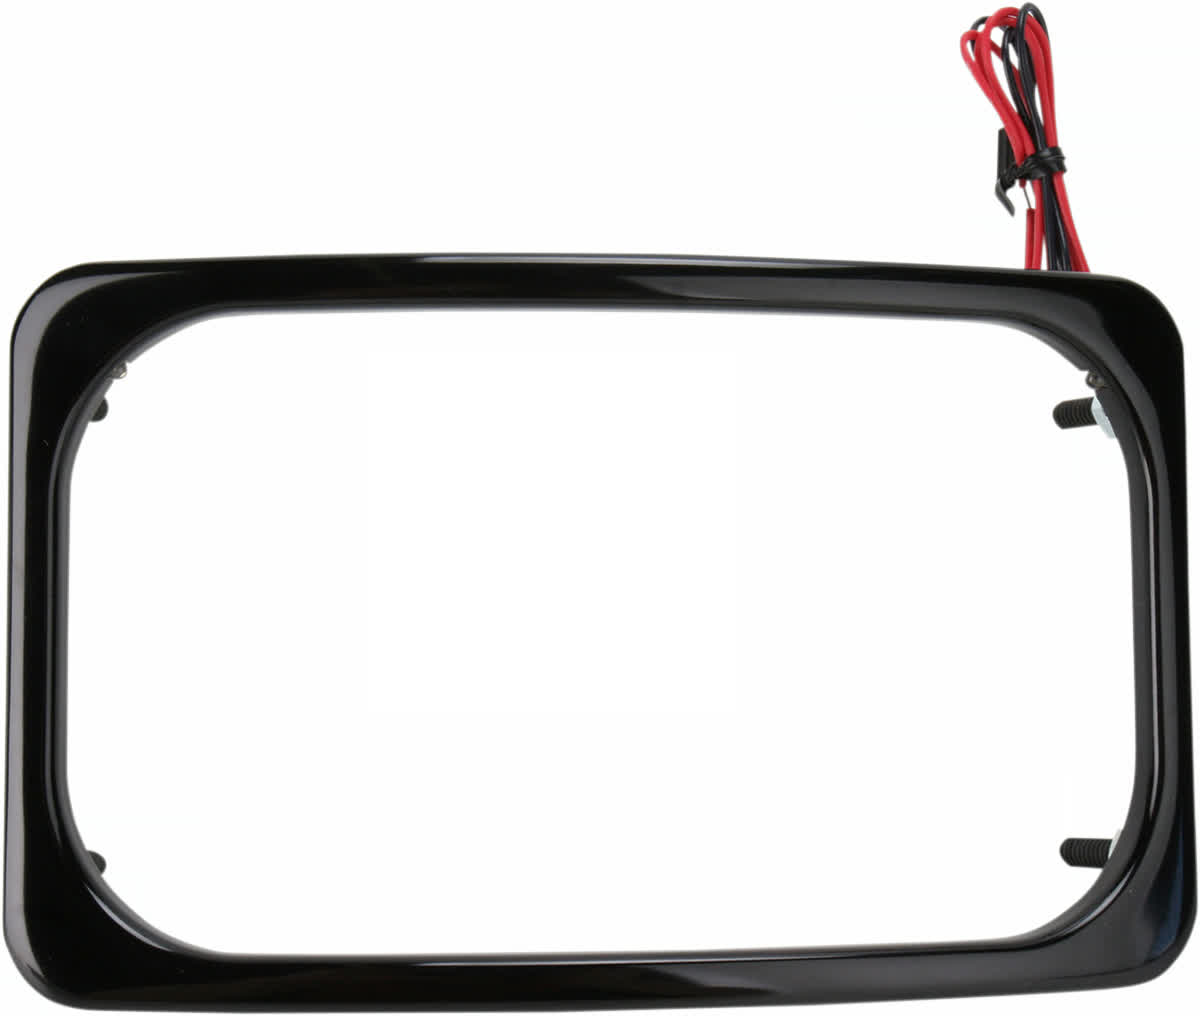 Paul Yaffe SLP2-B Stealth 2 License Plate Frame Frenched Box Kit Black